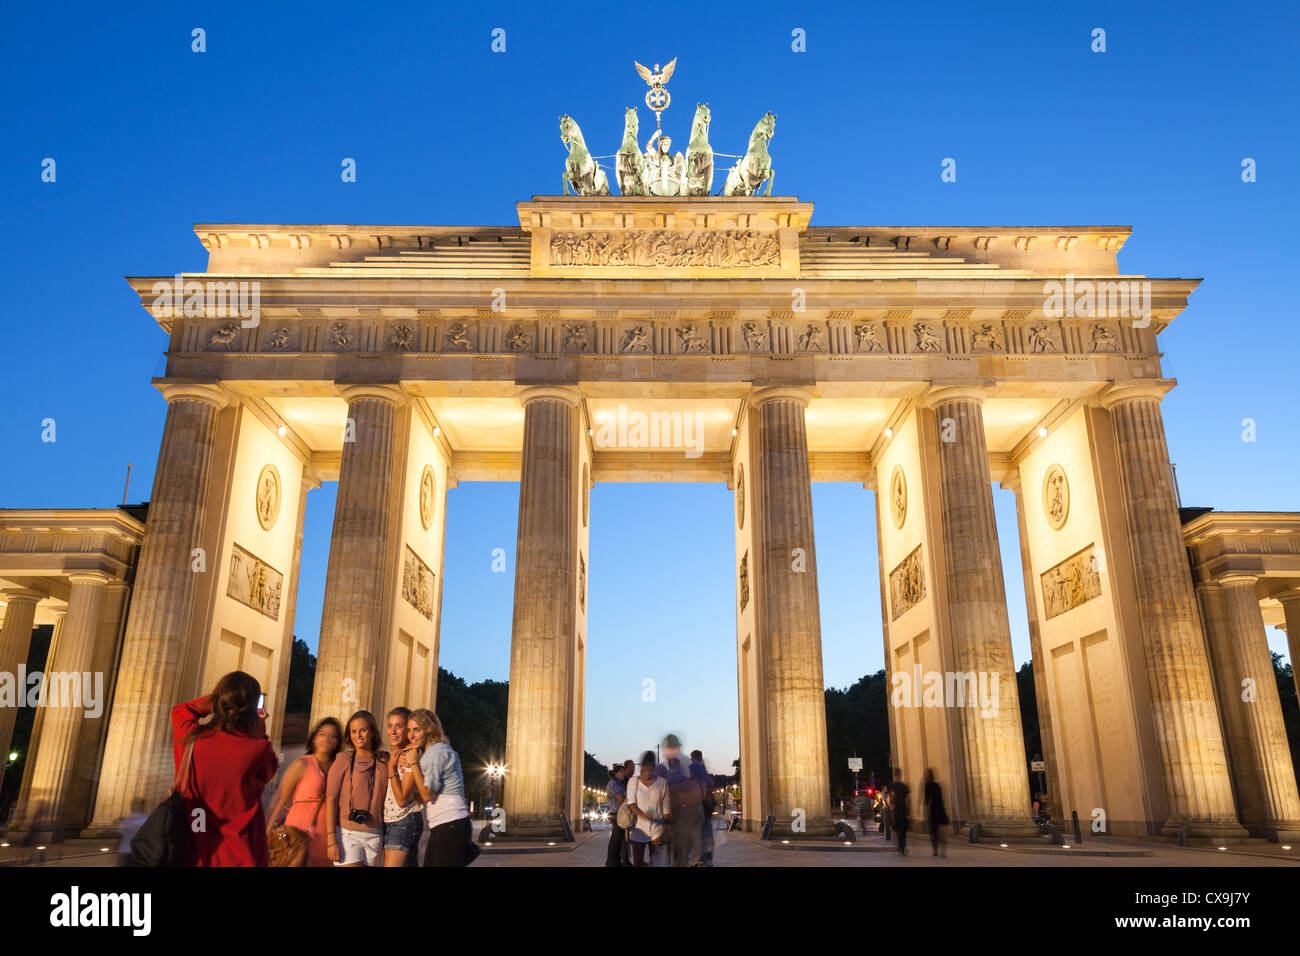 tourists in front of the Brandenburg Gate, Berlin, Germany - Stock Image